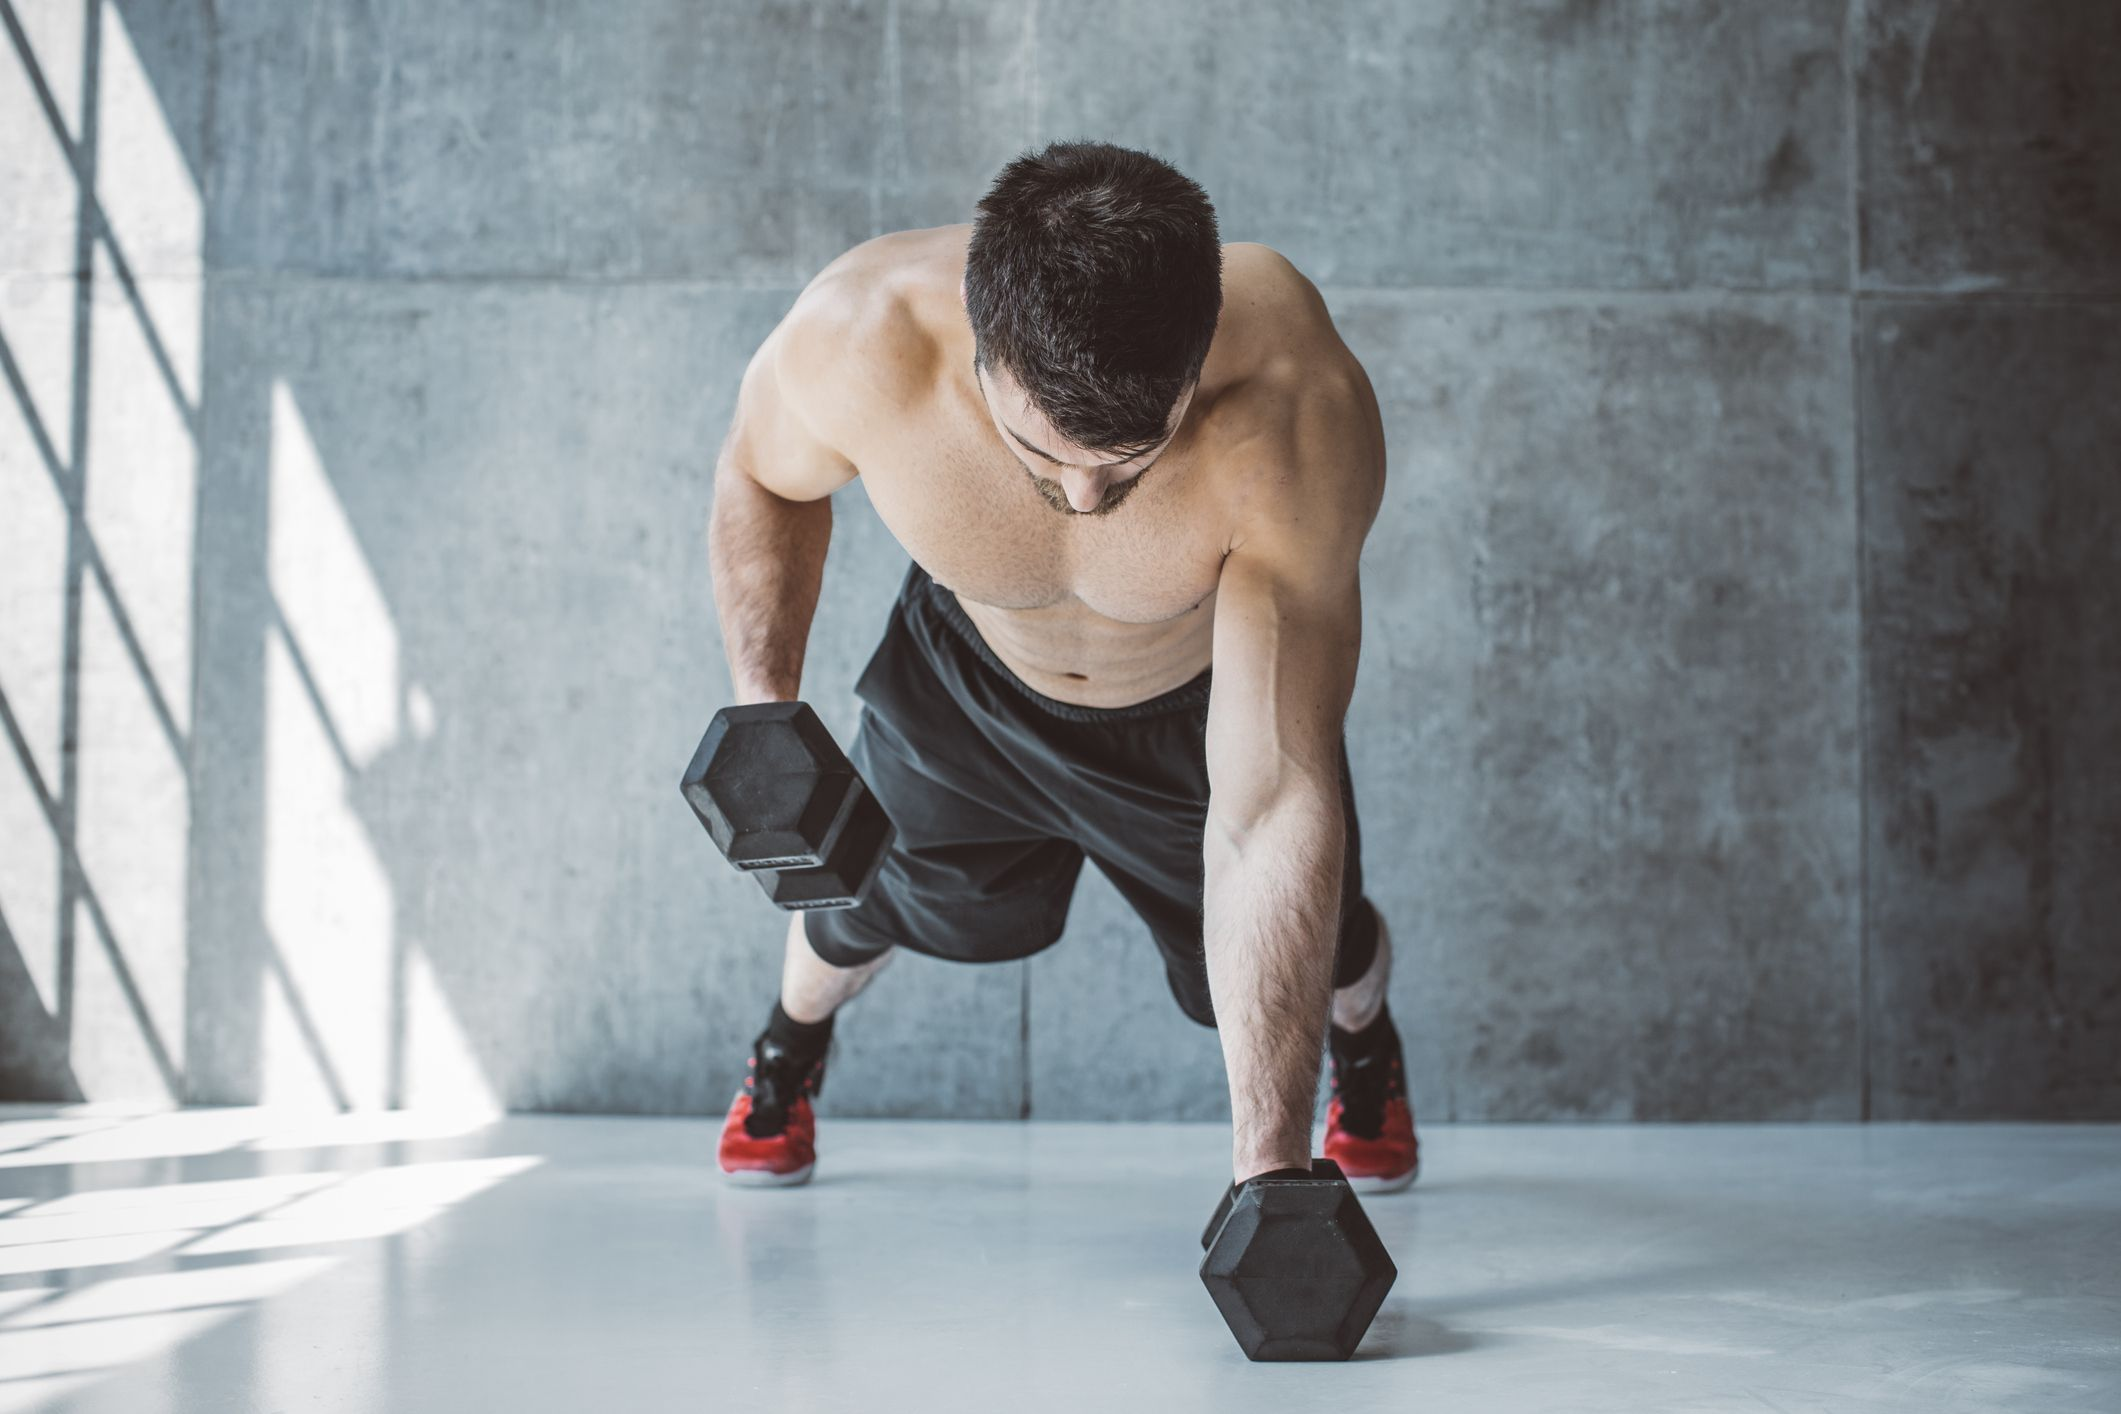 This Calorie-Burning Dumbbell Workout Strengthens Your Chest, Back and Arms For Real Size